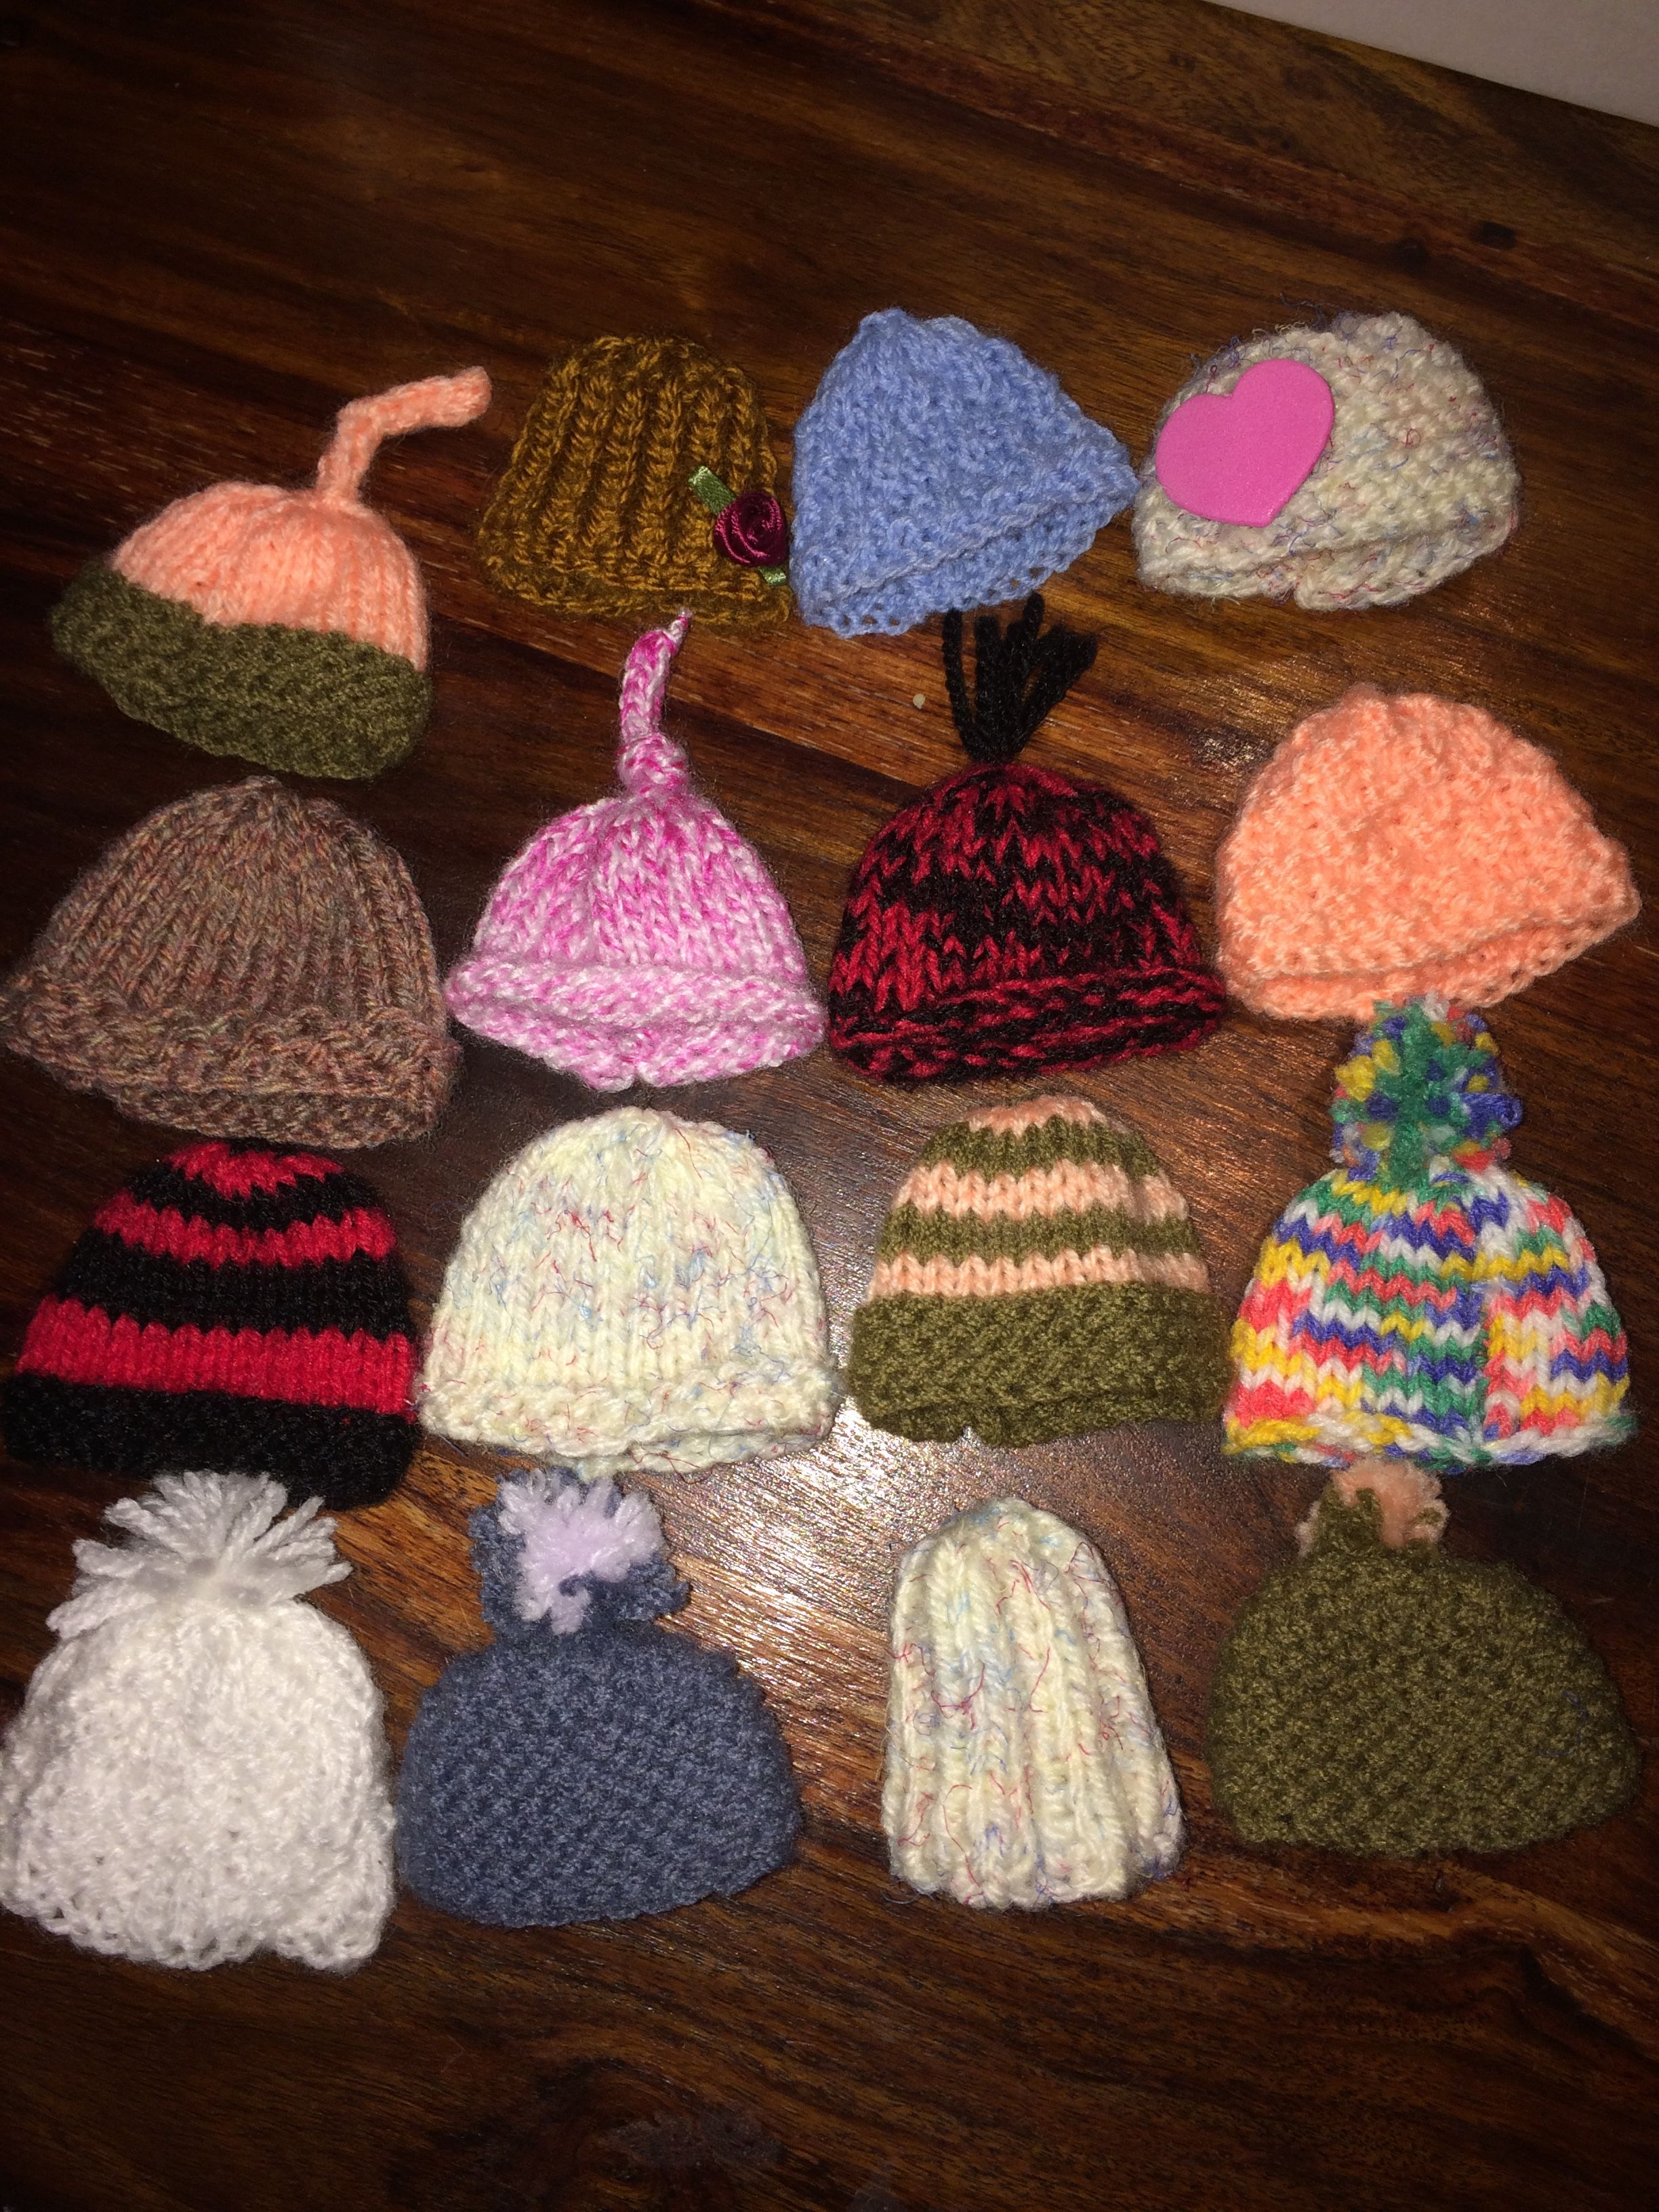 d7797df10f9 Simple hats in different patterns  waffle